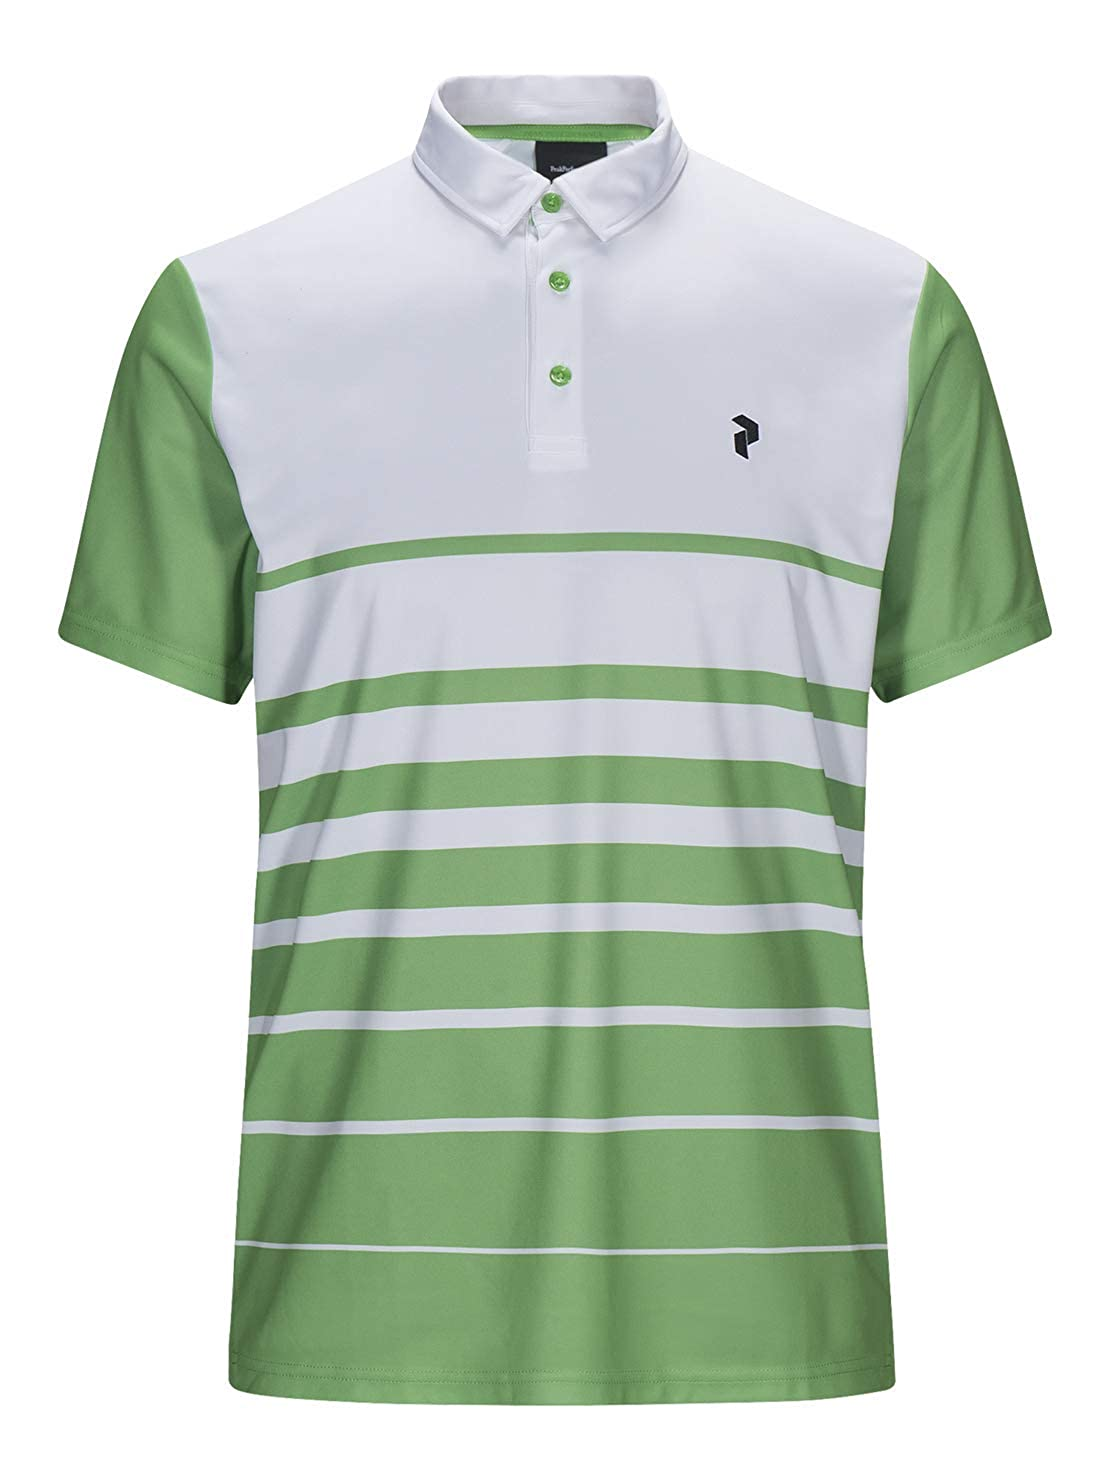 PEAK PERFORMANCE Brandon - Polo de golf, color verde, Unisex ...